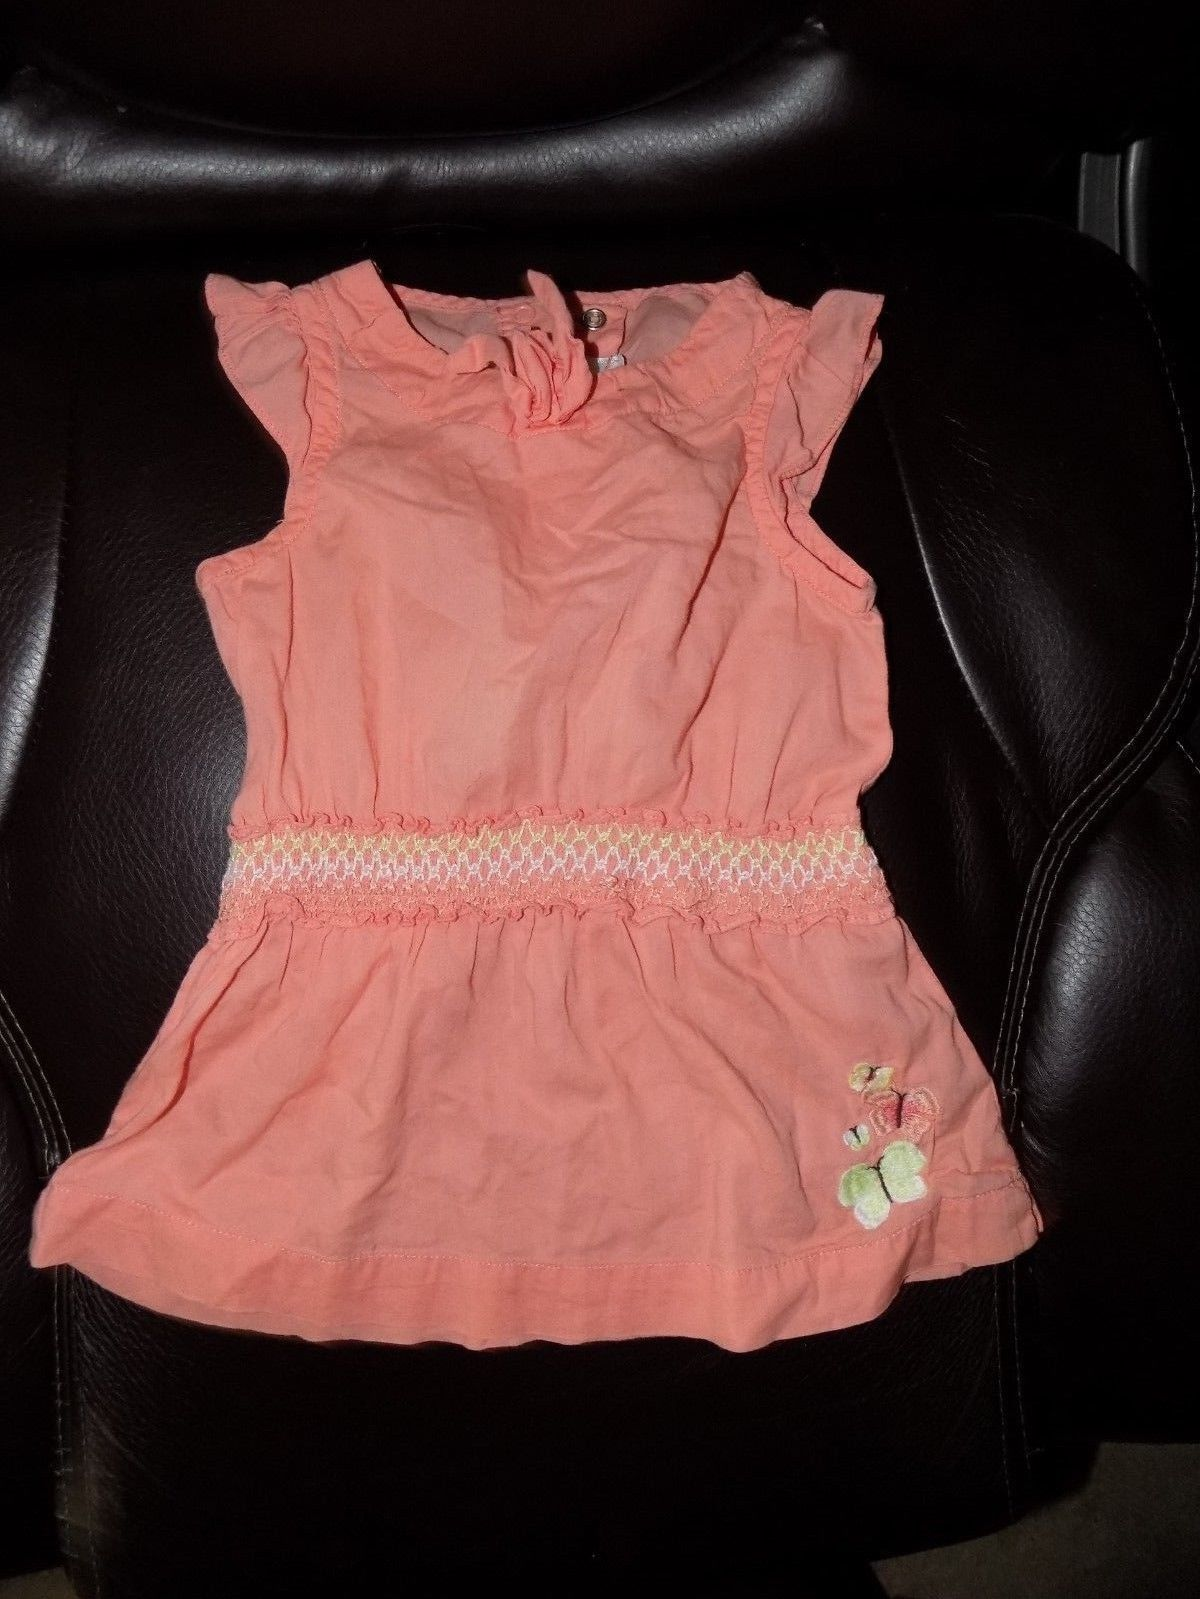 Primary image for Janie And Jack Butterfly Peach Solid Summer Dress Size 6/12 Months Girl's EUC